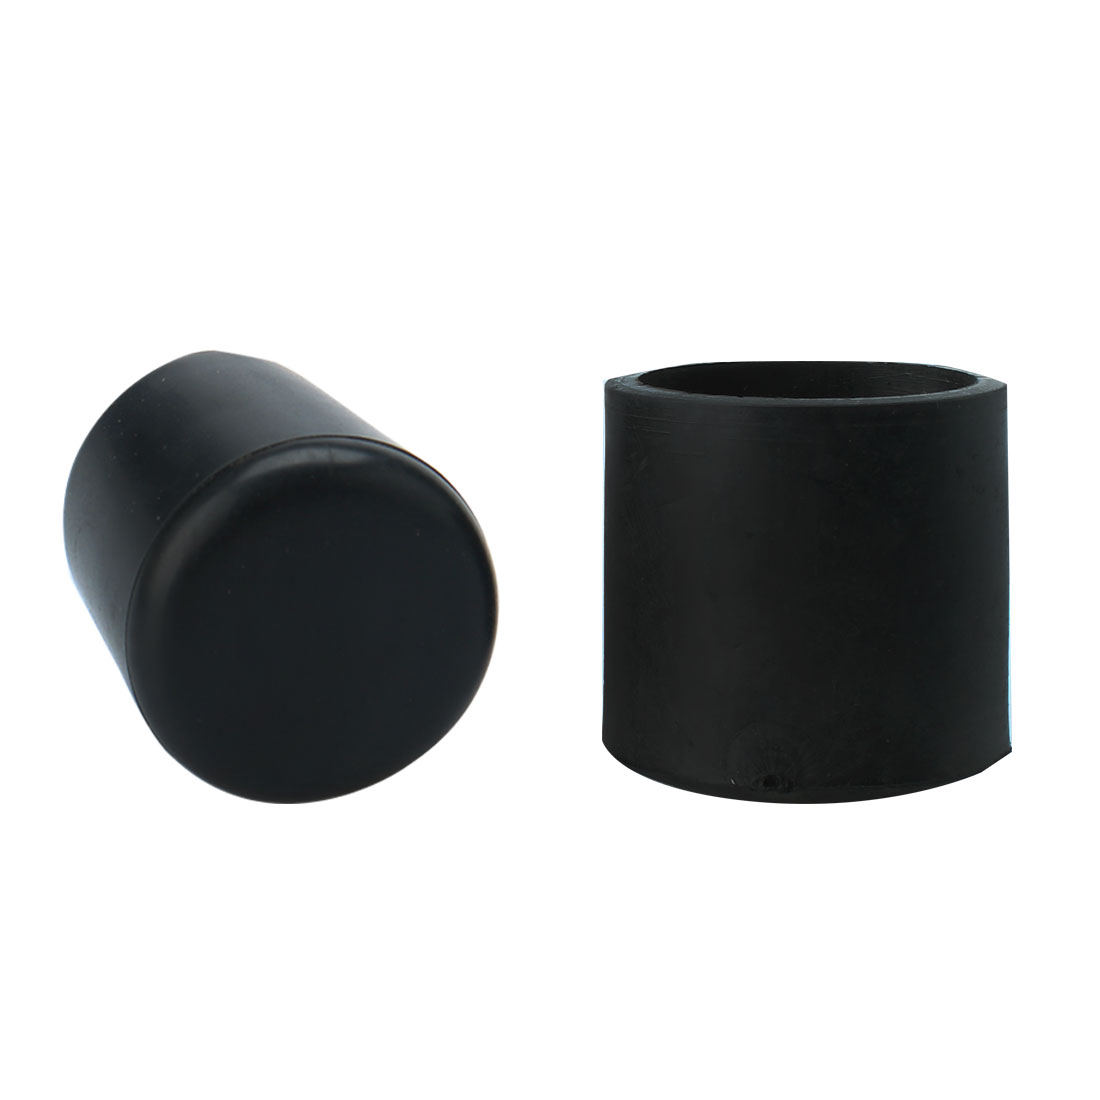 2 Pcs Black Soft Plastic Round Table Chair Foot Cover Cap